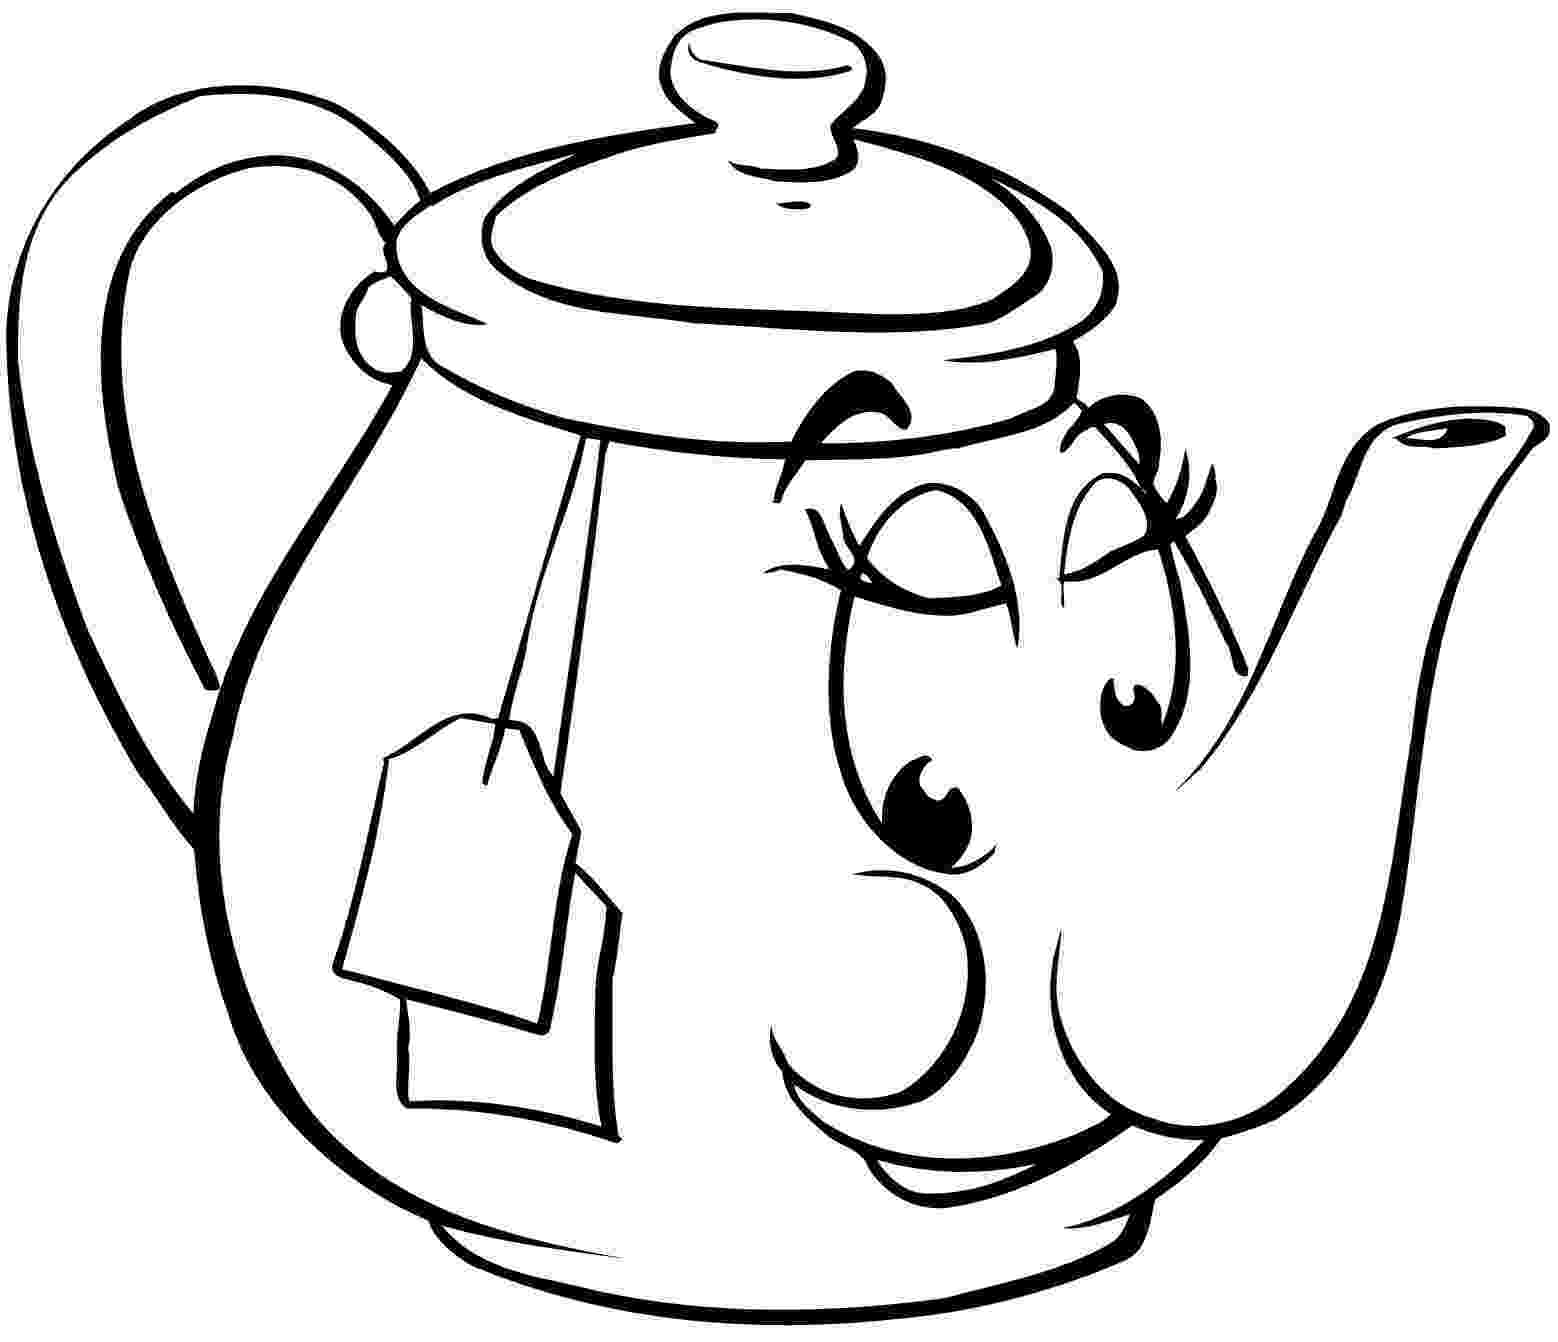 pictures of teapots to colour teapot coloring pages to pictures colour of teapots